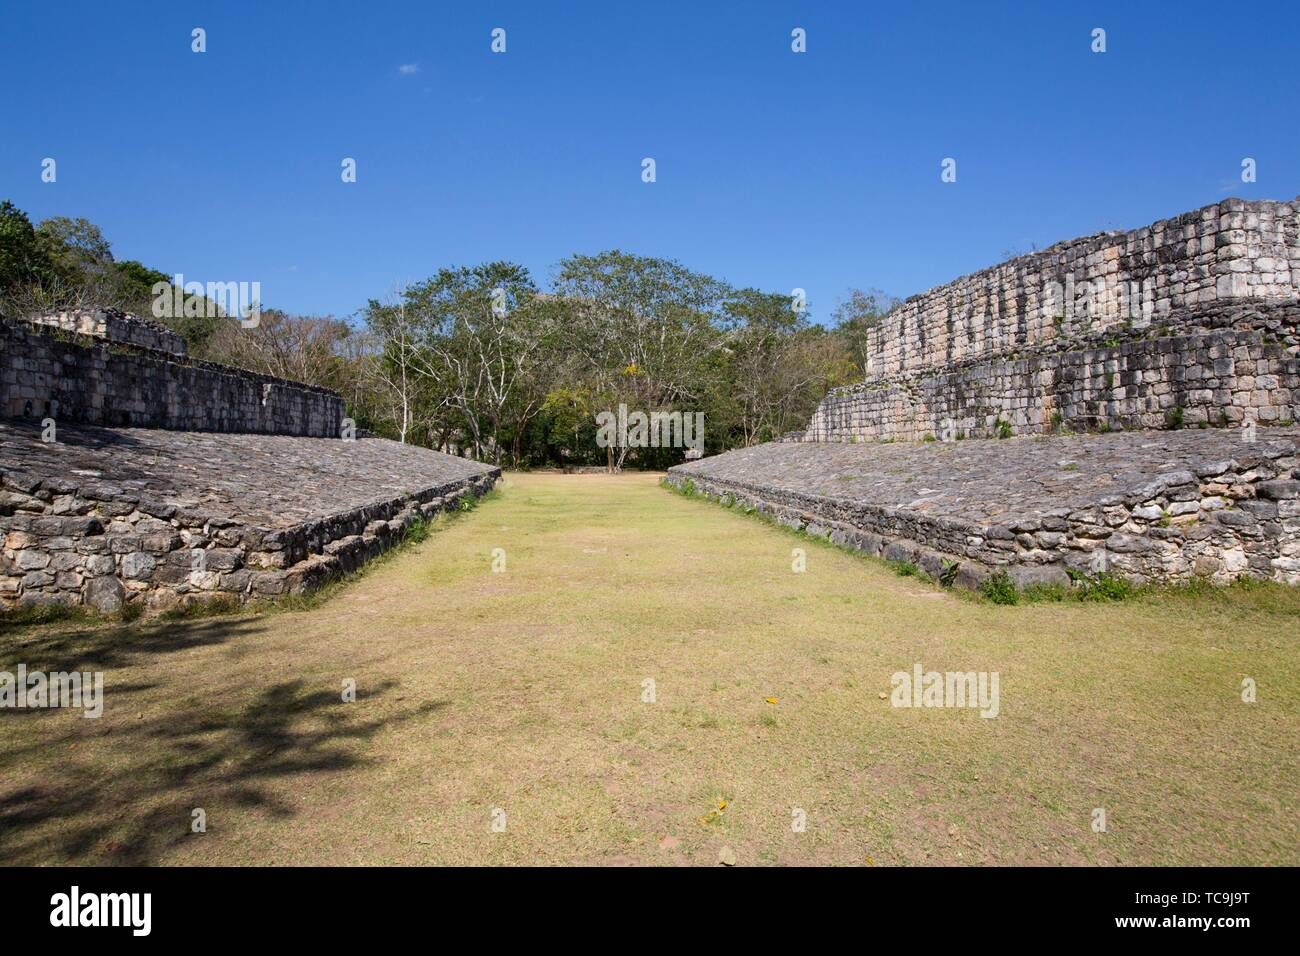 Ballcourt, Ek Balam, Yucatec-Mayan Archaeological Site, Yucatan, Mexico - Stock Image